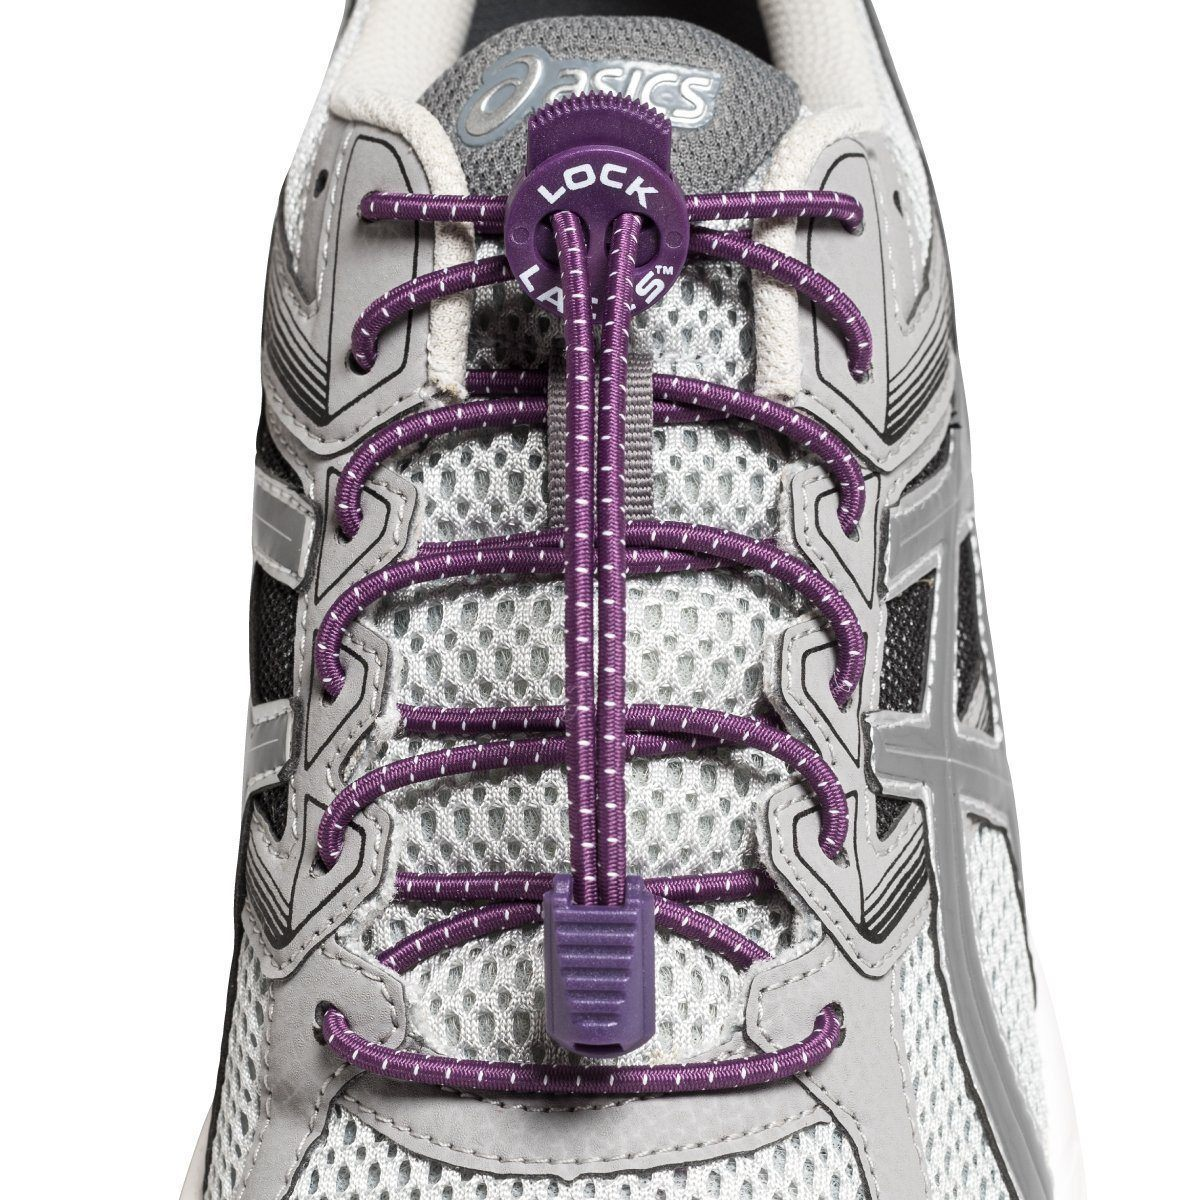 No-Tie Stretching Shoelaces